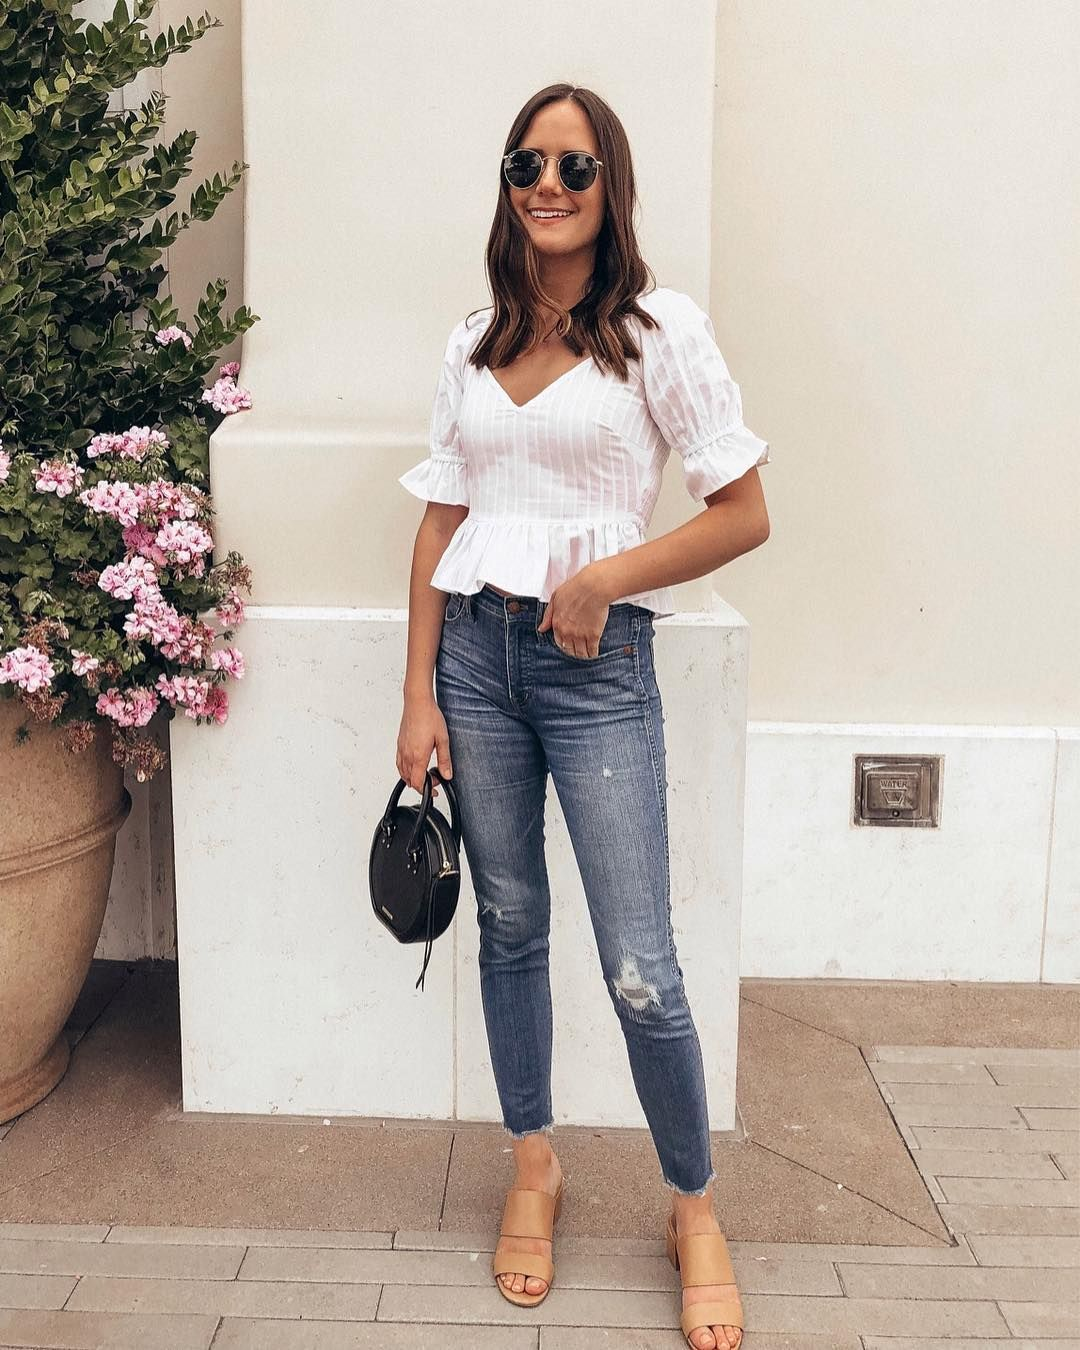 c56bbdab326 Pretty little white top paired with jeans and slides   probably my favorite  outfit combo ever. 🙌🏼Sometimes I try to branch out but...I m…